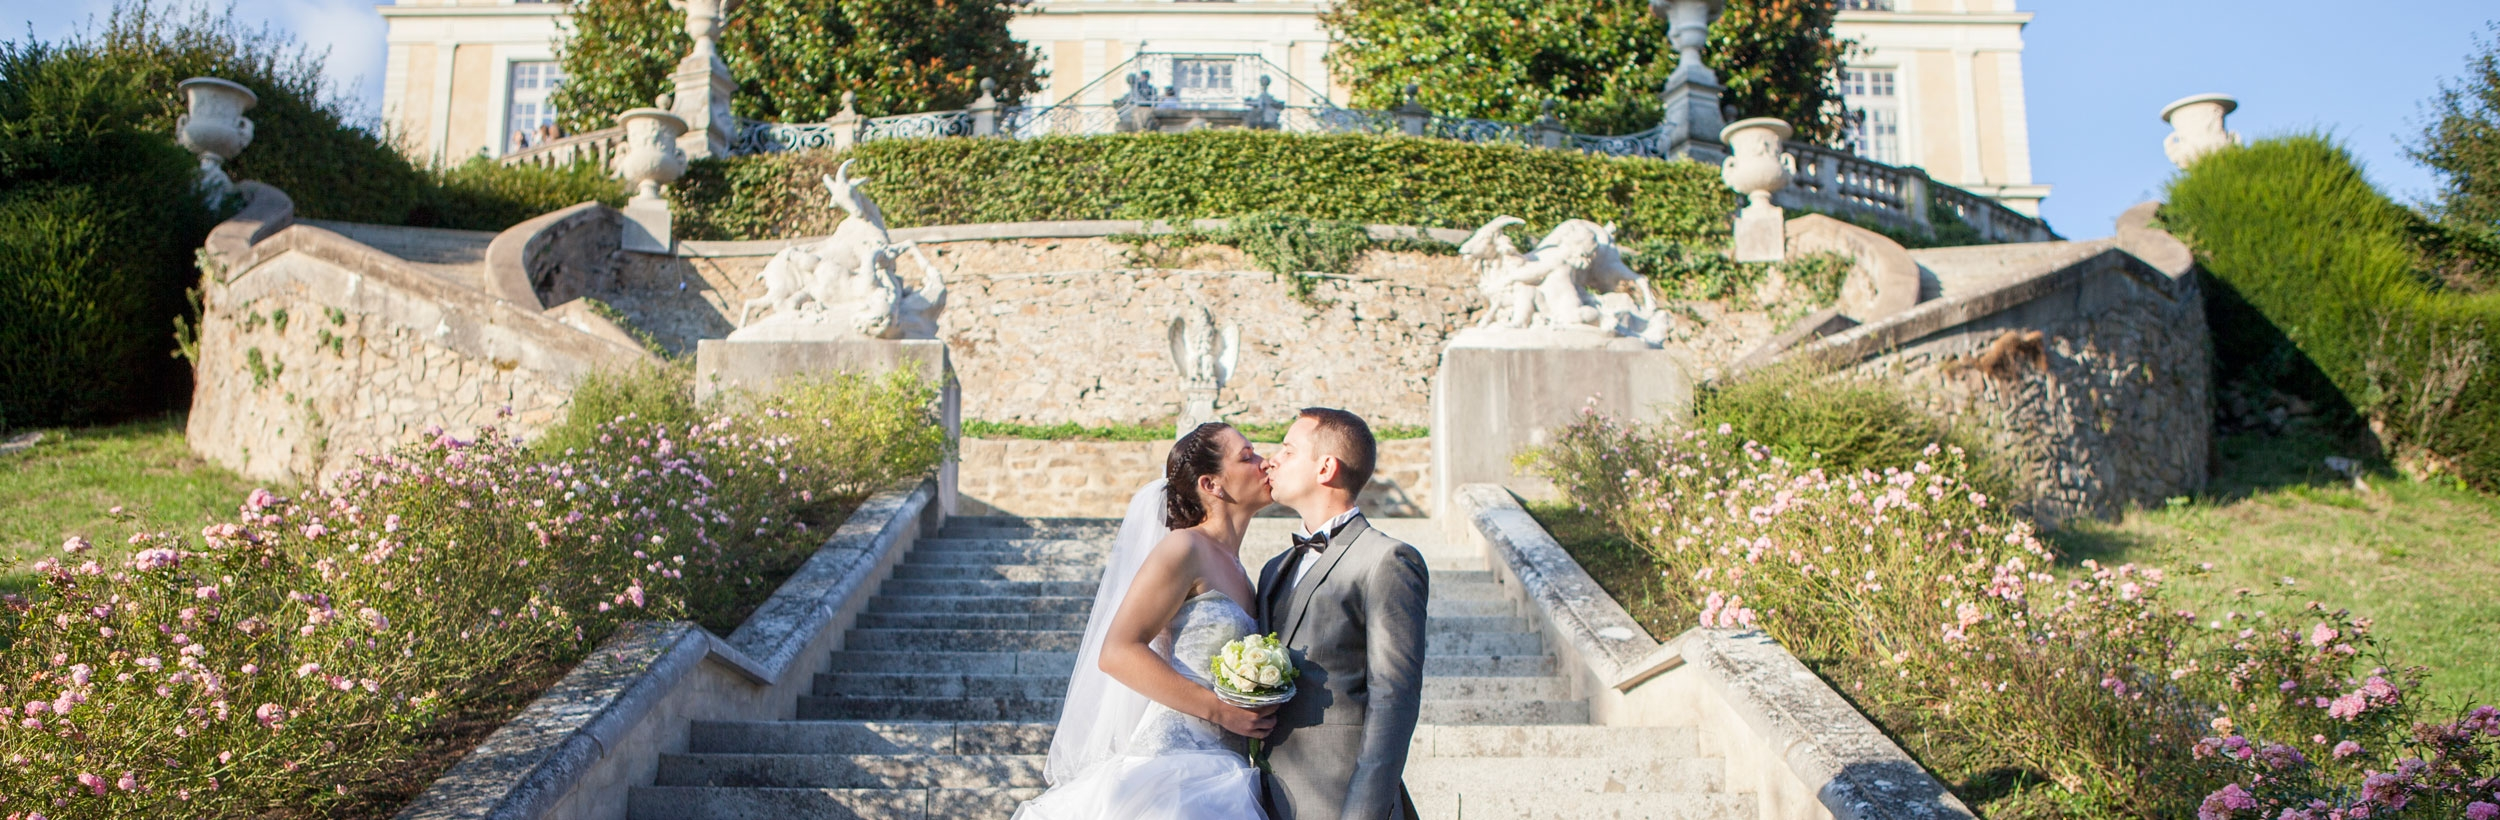 particuliers-mariage-oui-delphineguillaume-pagetop